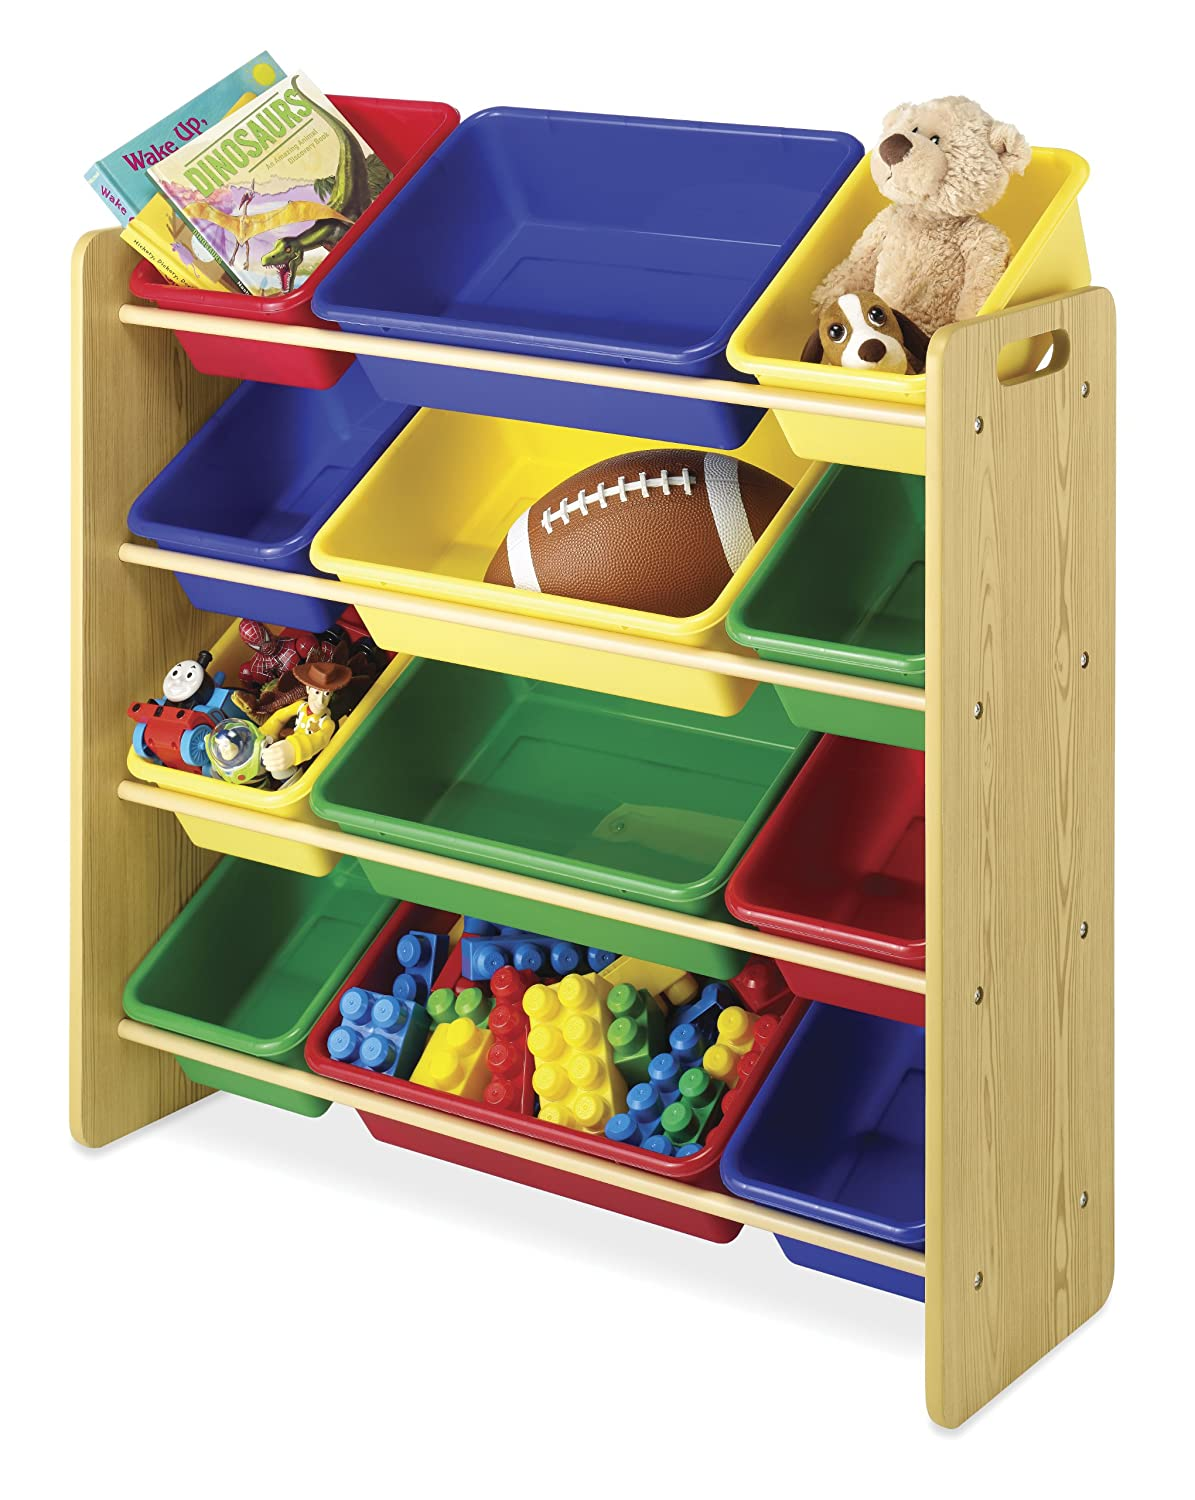 Amazon.com: Whitmor Kidu0027s 12 Bin Organizer, Primary Colors: Home U0026 Kitchen